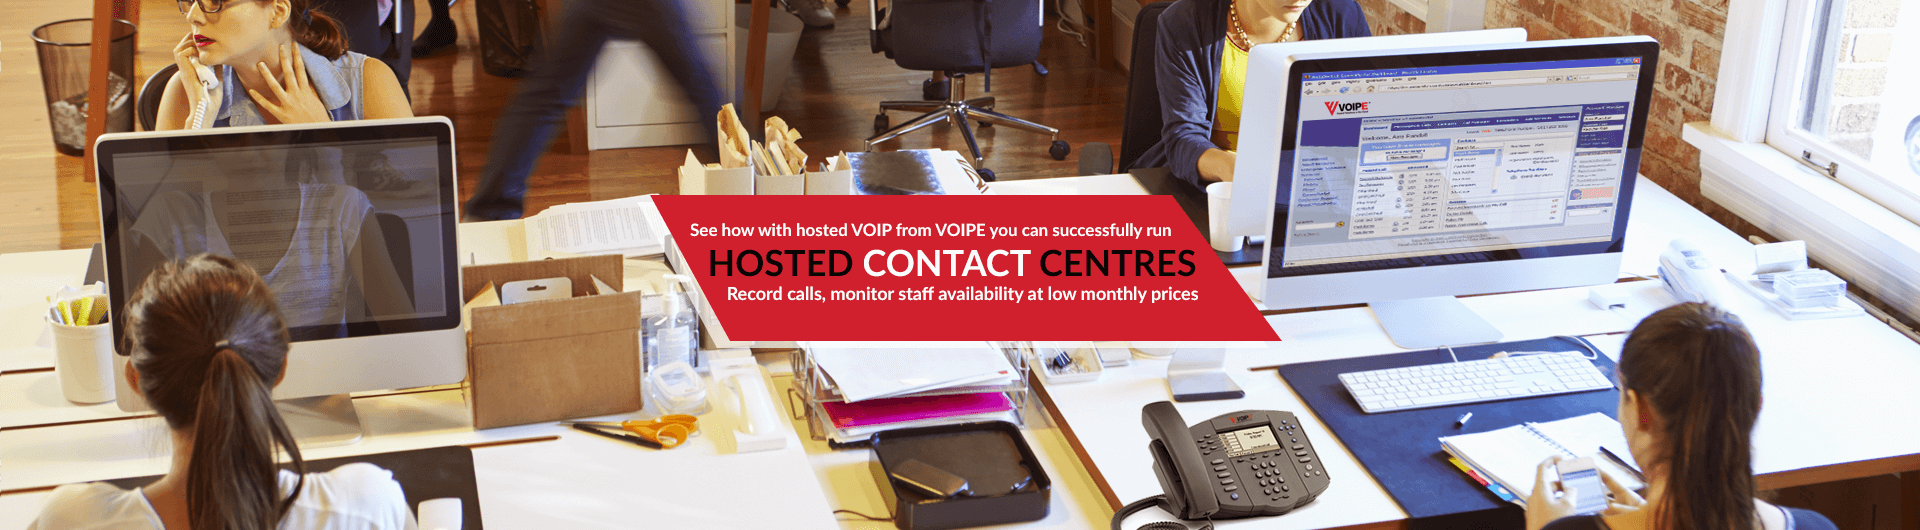 Successfully run a hosted contact centre with hosted VOIP and record calls, monitor staff and more at low monthly prices